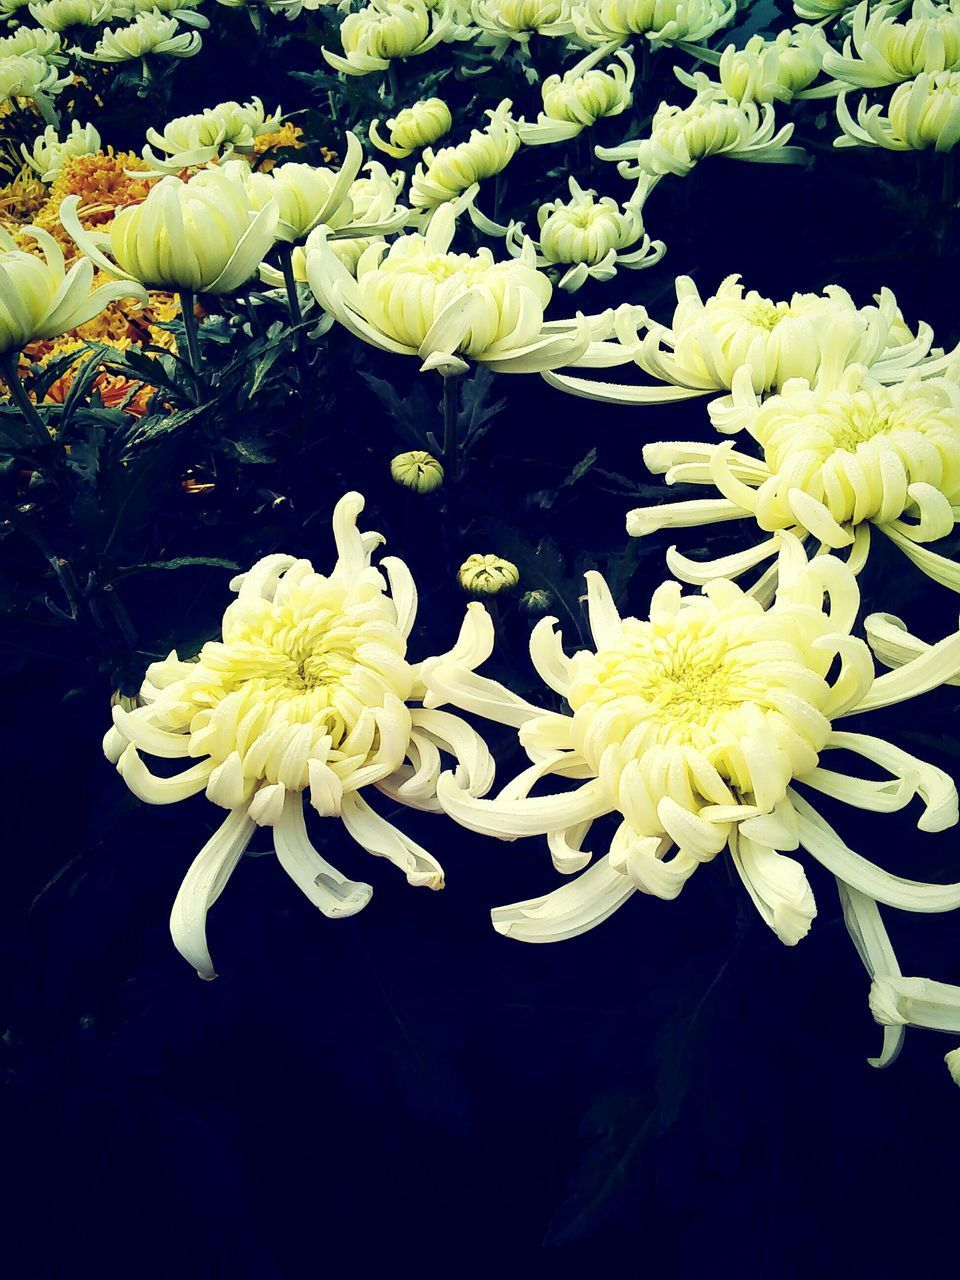 flower, petal, freshness, fragility, flower head, growth, beauty in nature, white color, nature, close-up, plant, blooming, leaf, high angle view, in bloom, yellow, blossom, bunch of flowers, no people, botany